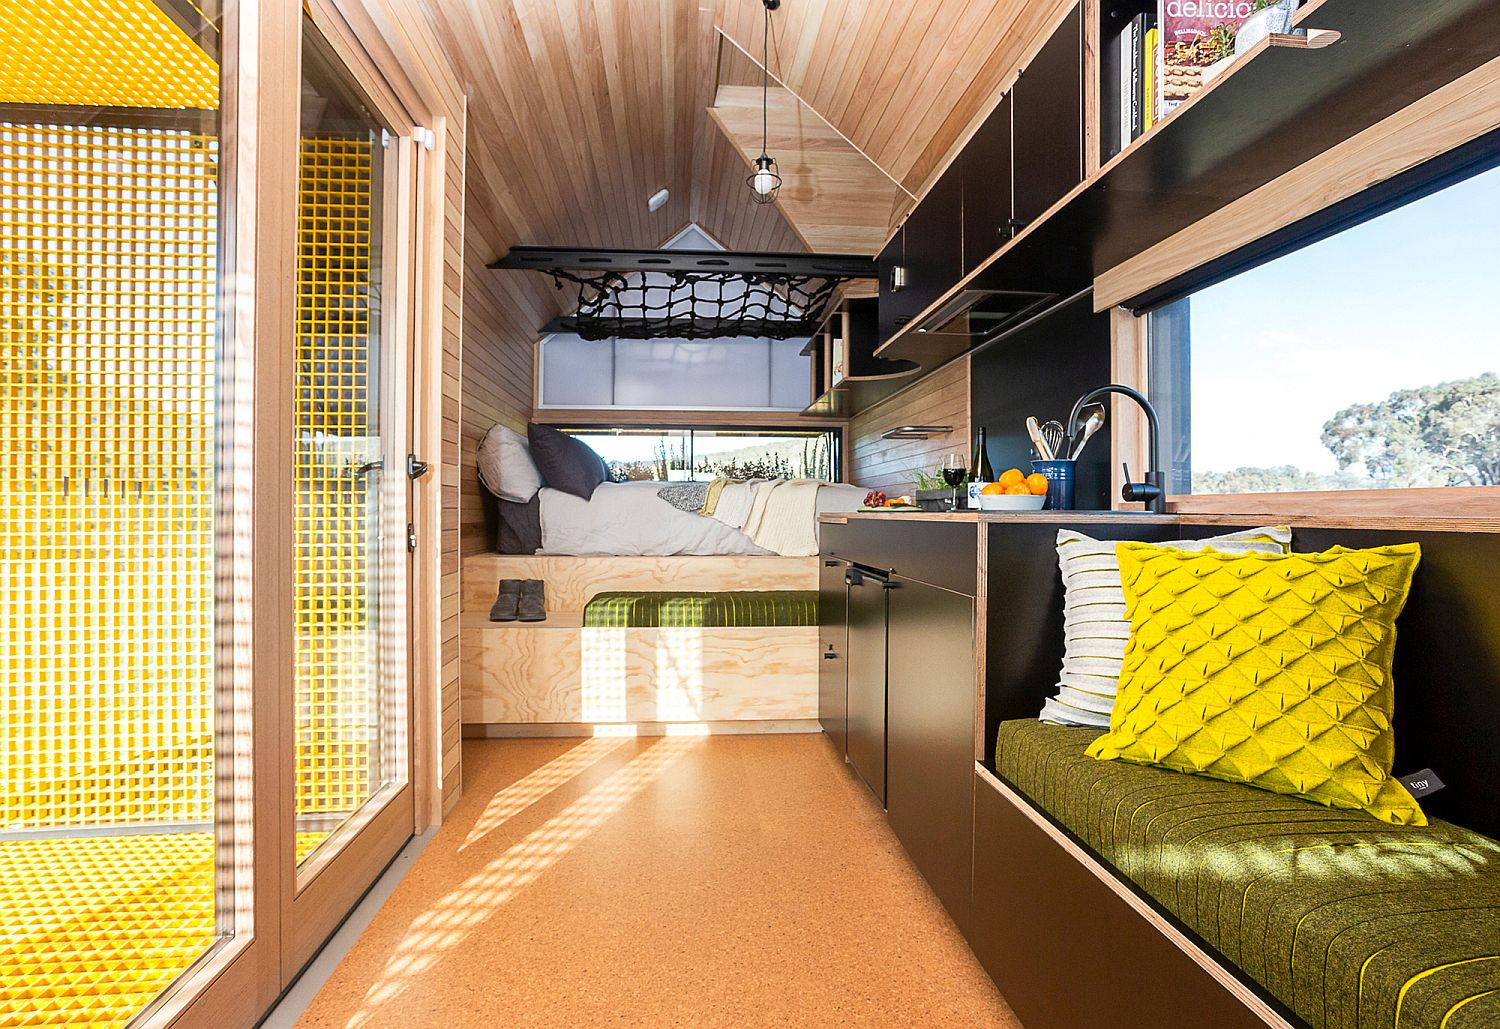 Making most of the limited space inside the tiny cabin using smart floor plan